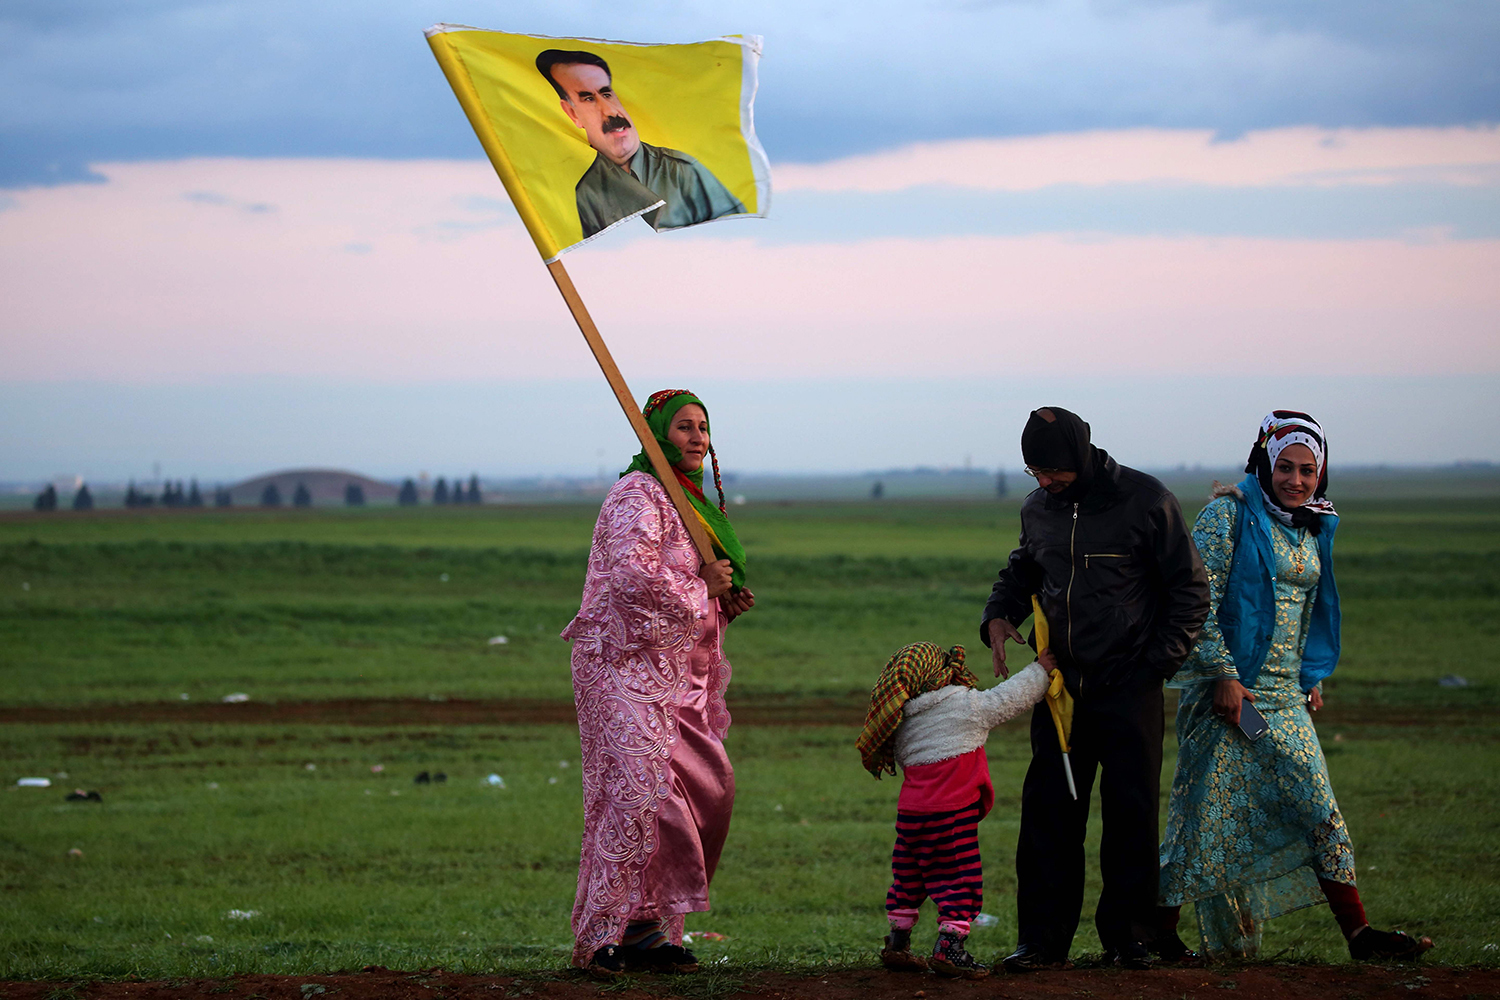 TOPSHOT - A Syrian Kurdish woman holds a portrait of jailed Kurdish rebel chief Abdullah Ocalan during the annual celebrations of Noruz, the Persian New Year, on March 21, 2017, in the northeastern Syrian city of Qamishli. The Persian New Year is an ancient Zoroastrian tradition celebrated by Iranians and Kurds which coincides with the vernal (spring) equinox and is calculated by the solar calender. / AFP PHOTO / DELIL SOULEIMAN / TT / kod 444